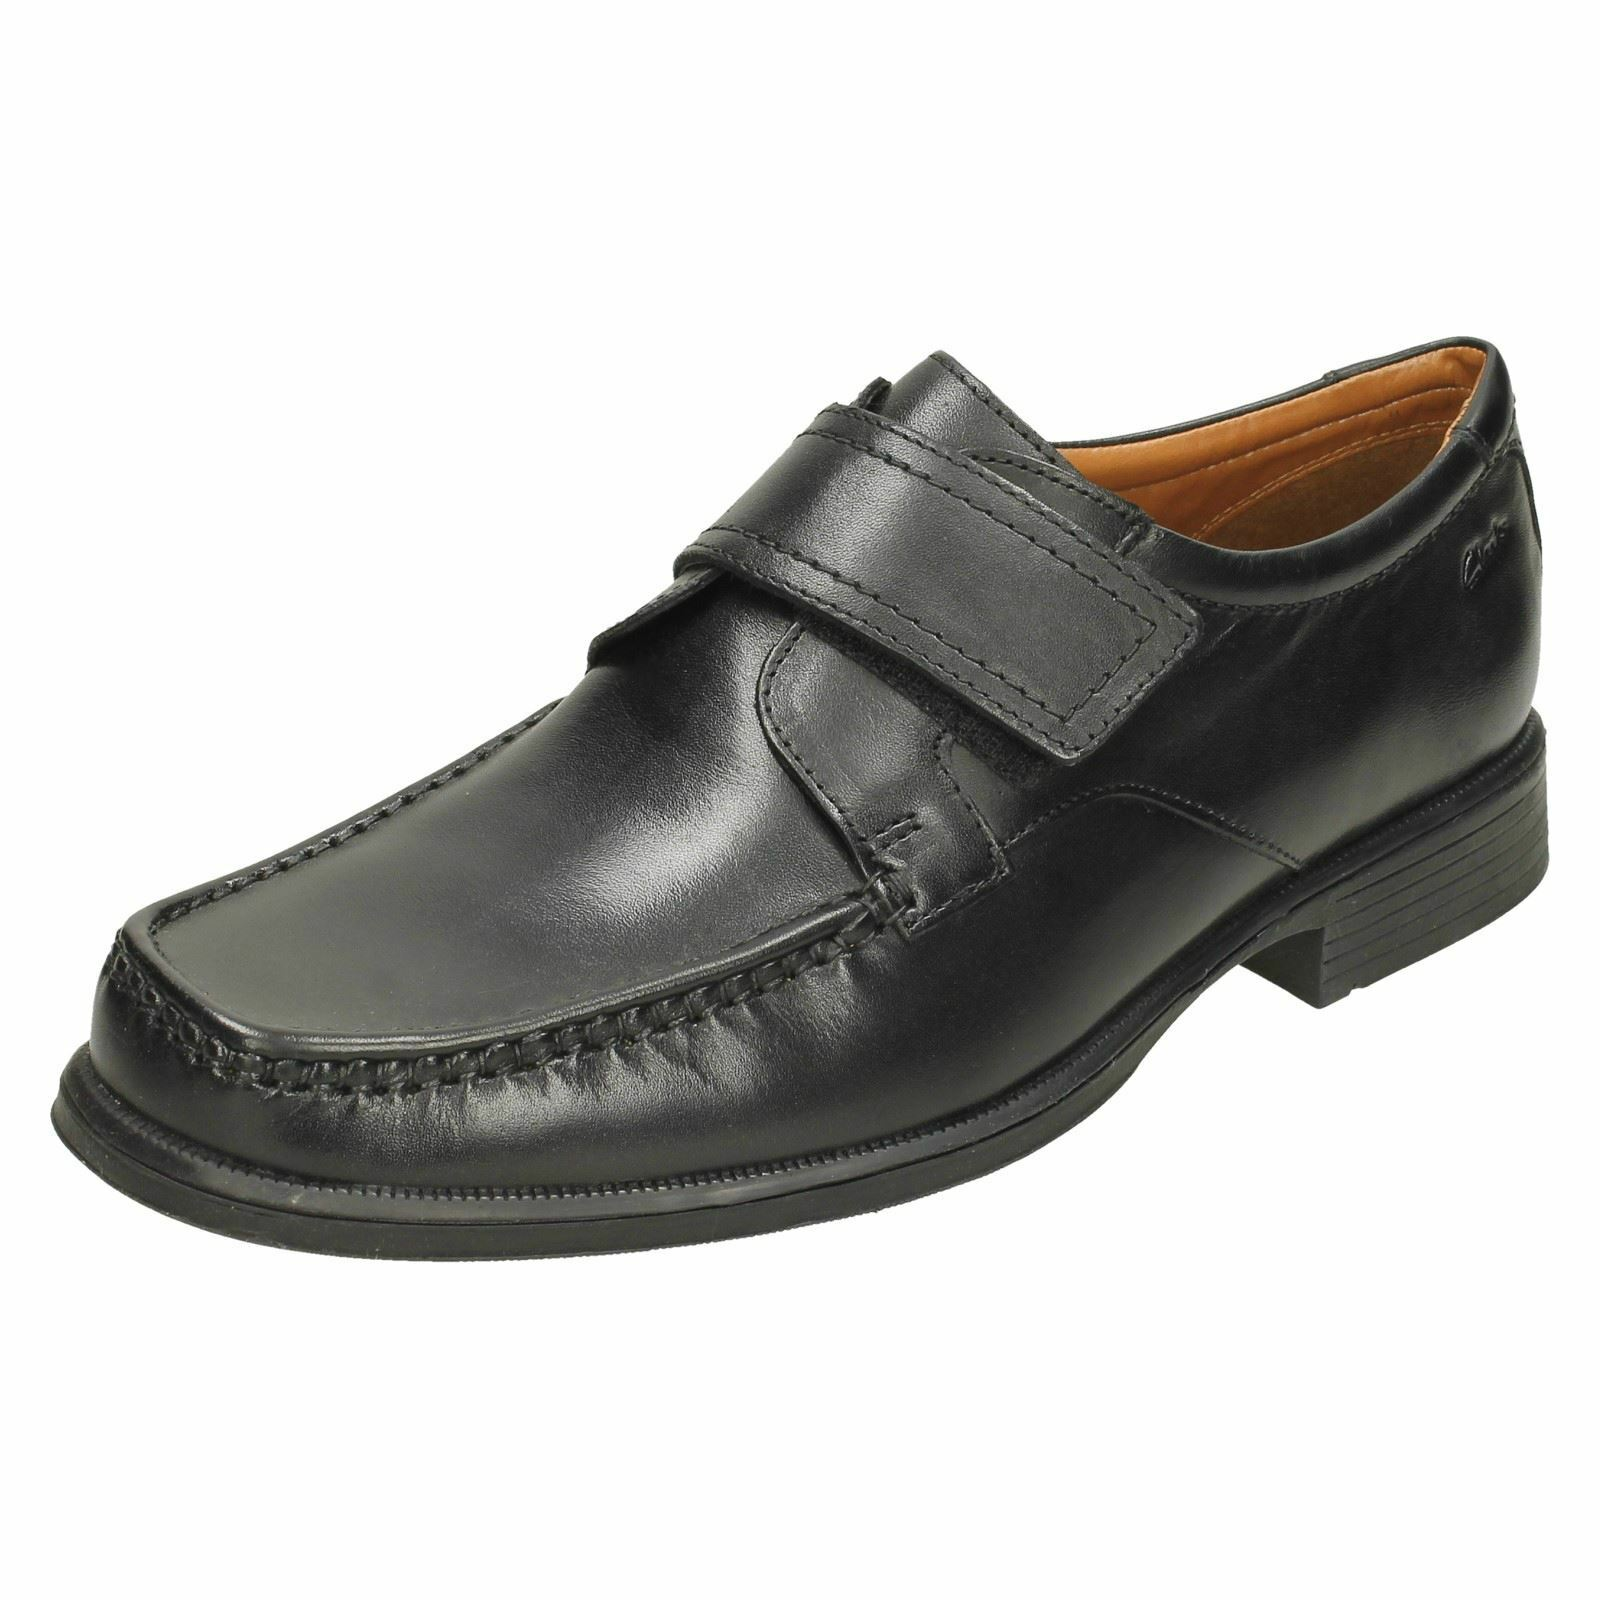 Mens Clarks Squared Toe Hook & Loop Smart Leather Moccasins Huckley Roll